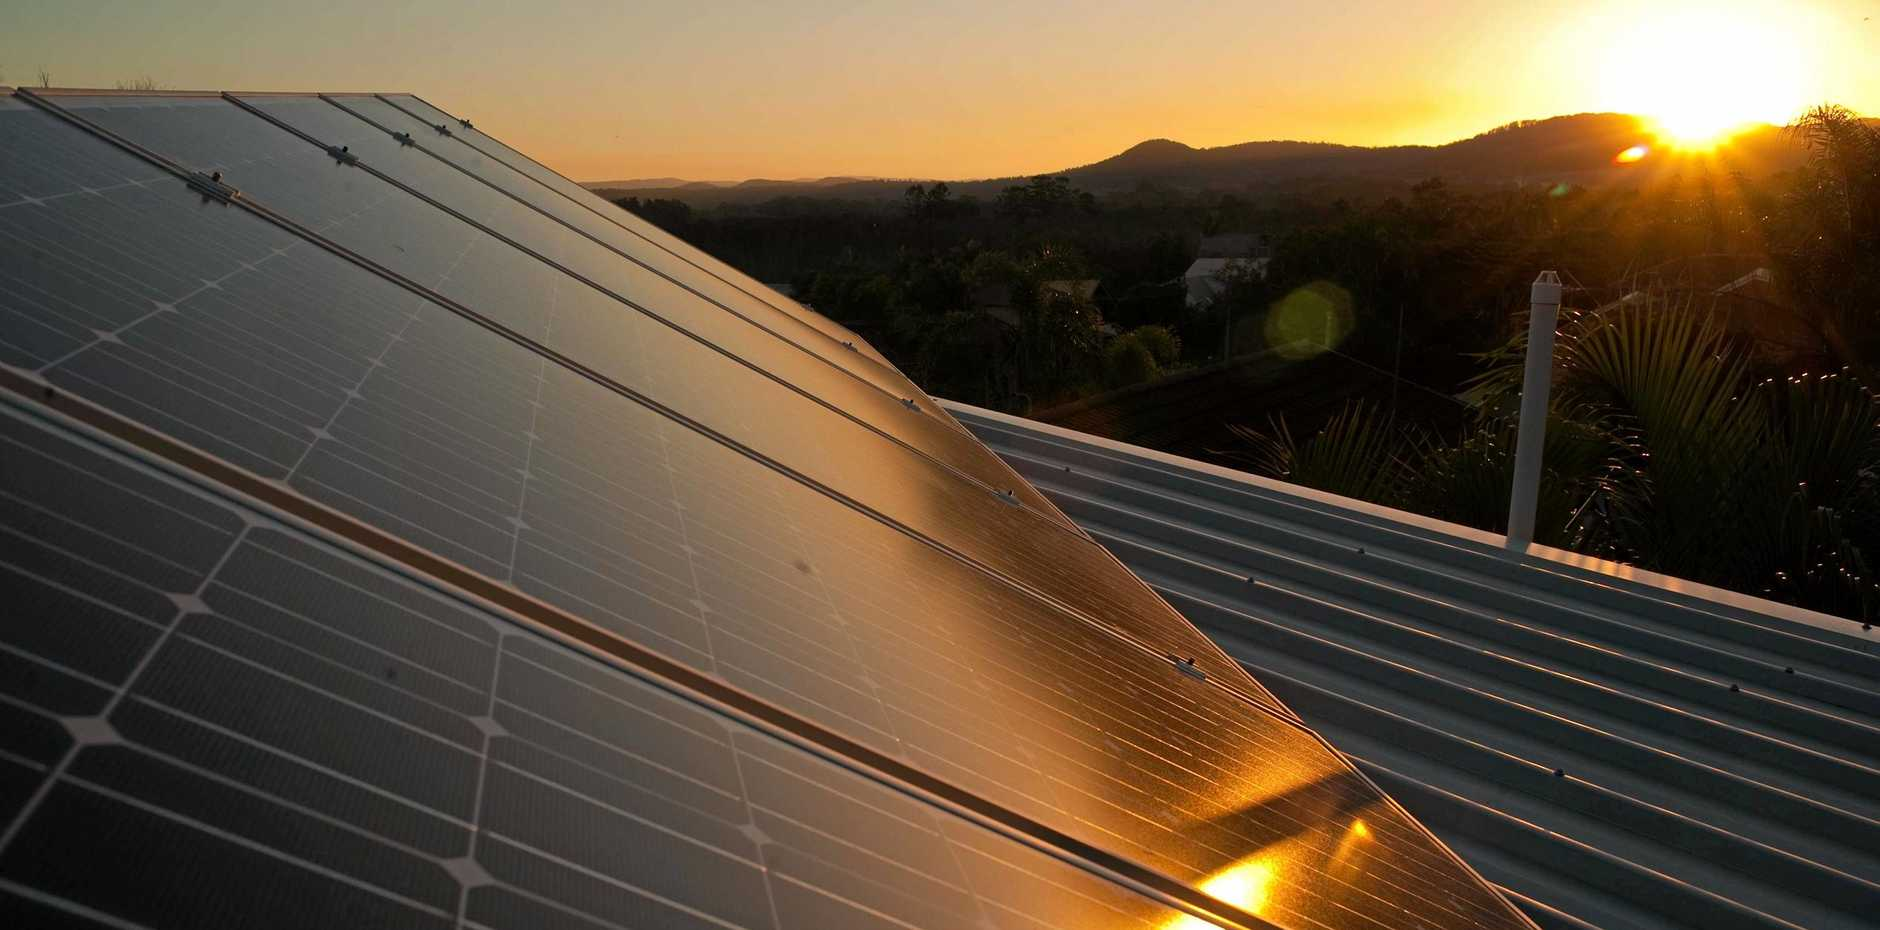 The Queensland Government is working towards lowering electricity prices through a solar initiative.